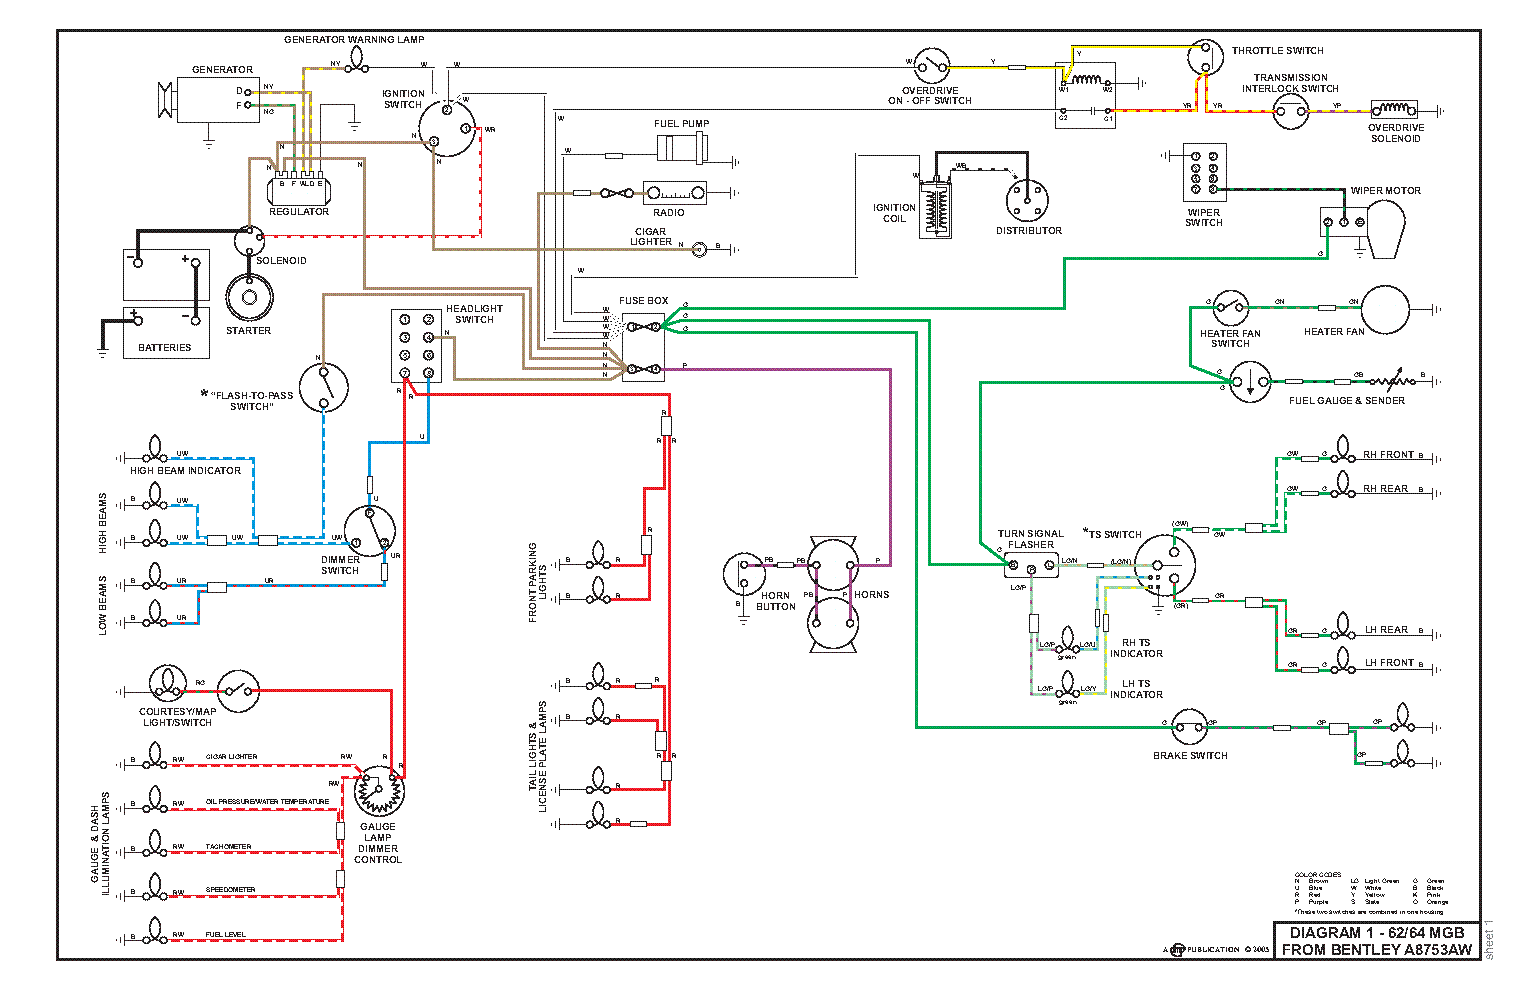 bentley_mg_b_car_wiring_diagrams.pdf_1 elektrotanya com previews 45612216 autohack bentle how to read automotive wiring diagrams pdf at bakdesigns.co